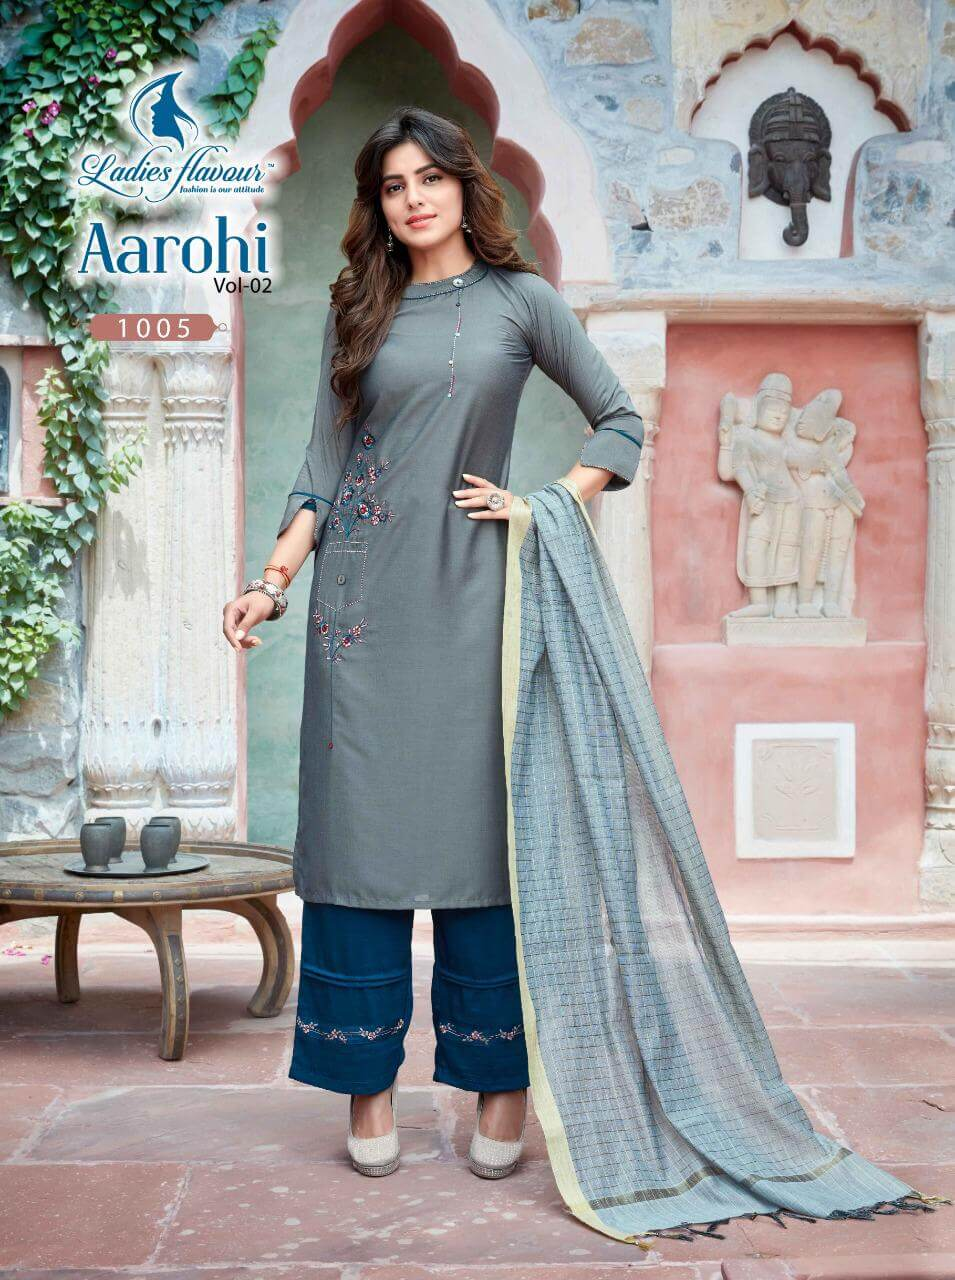 Ladies Flavour Aarohi Vol 2 collection 6